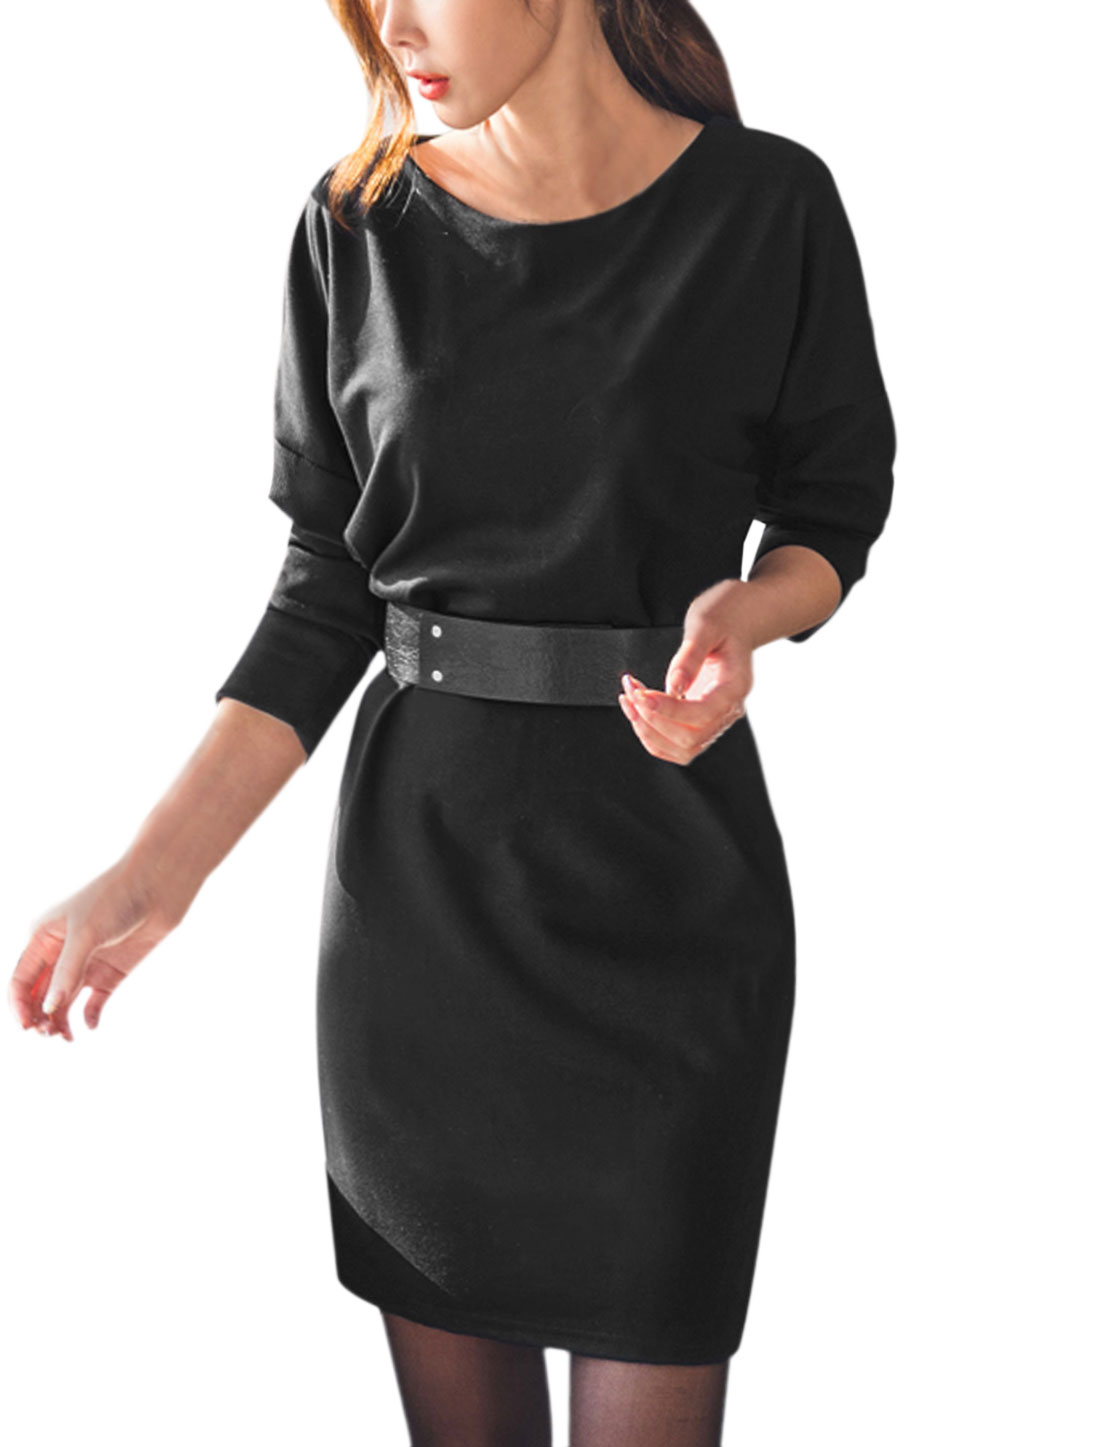 Women Belted Slim Fit Batwing Tunic Dress Black XS